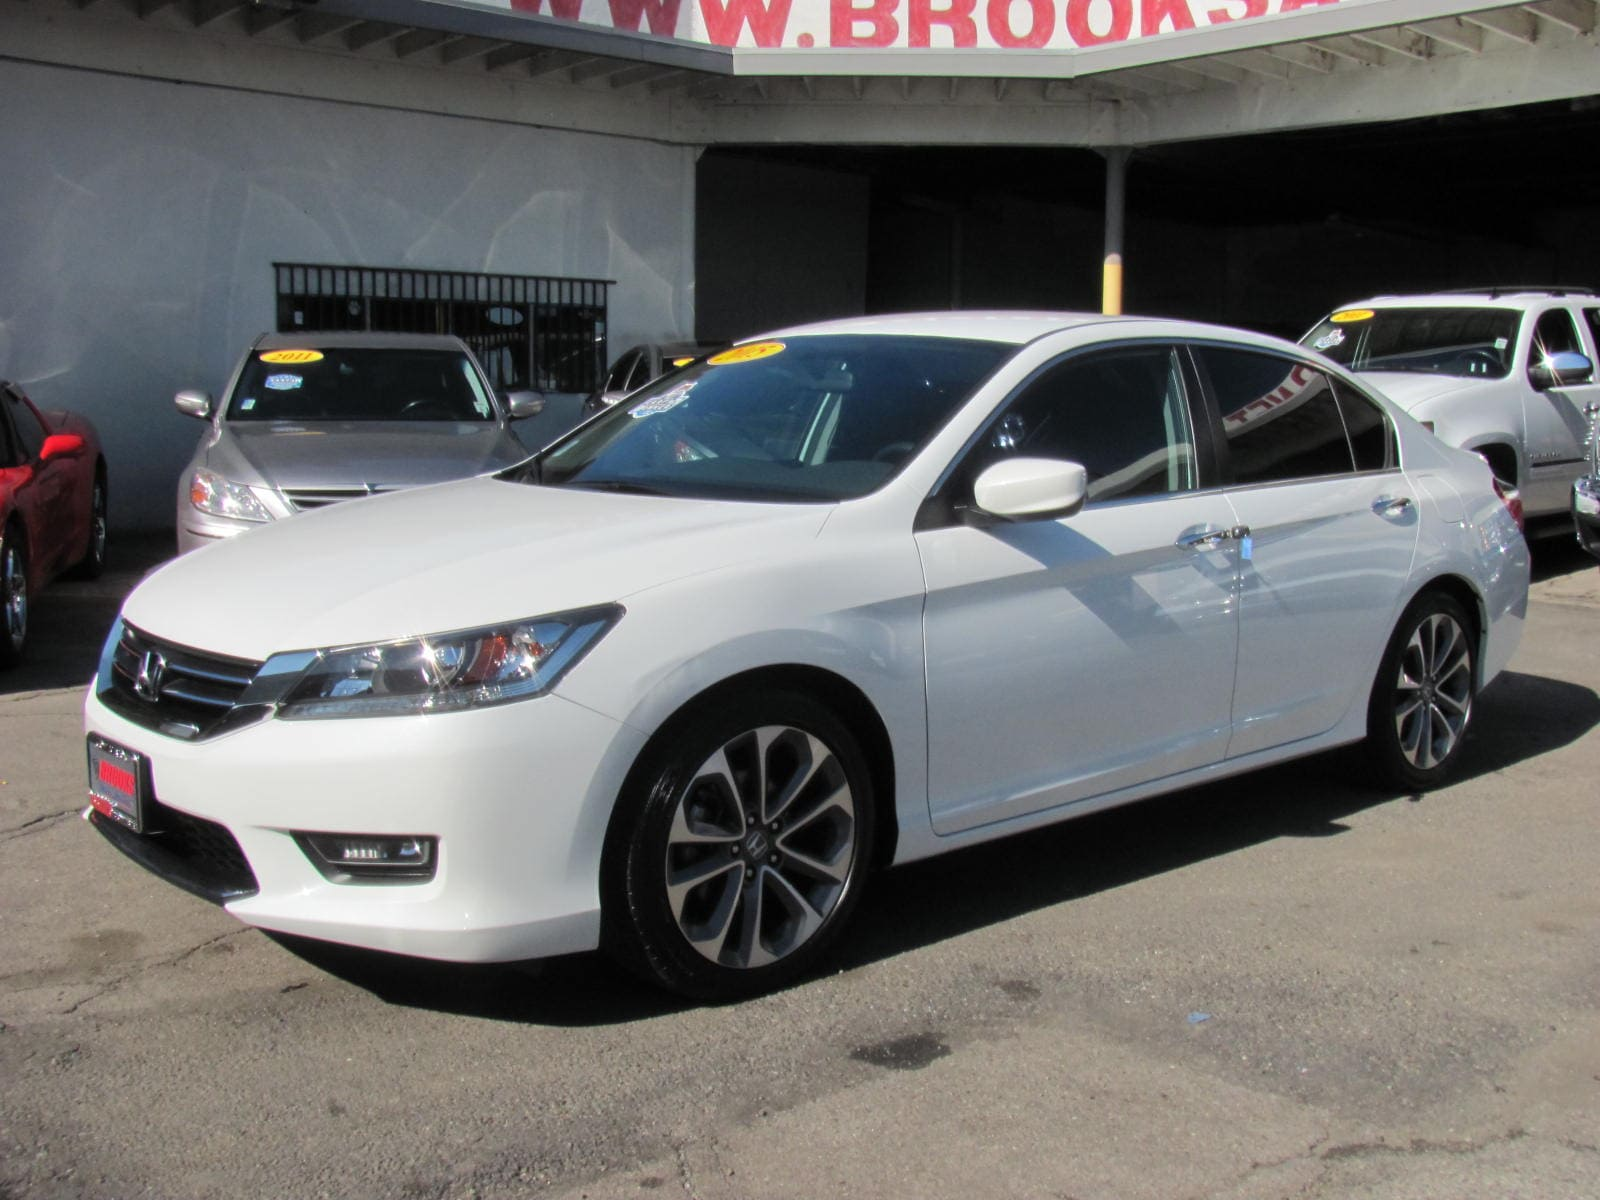 used 2015 honda accord for sale ontario ca. Black Bedroom Furniture Sets. Home Design Ideas